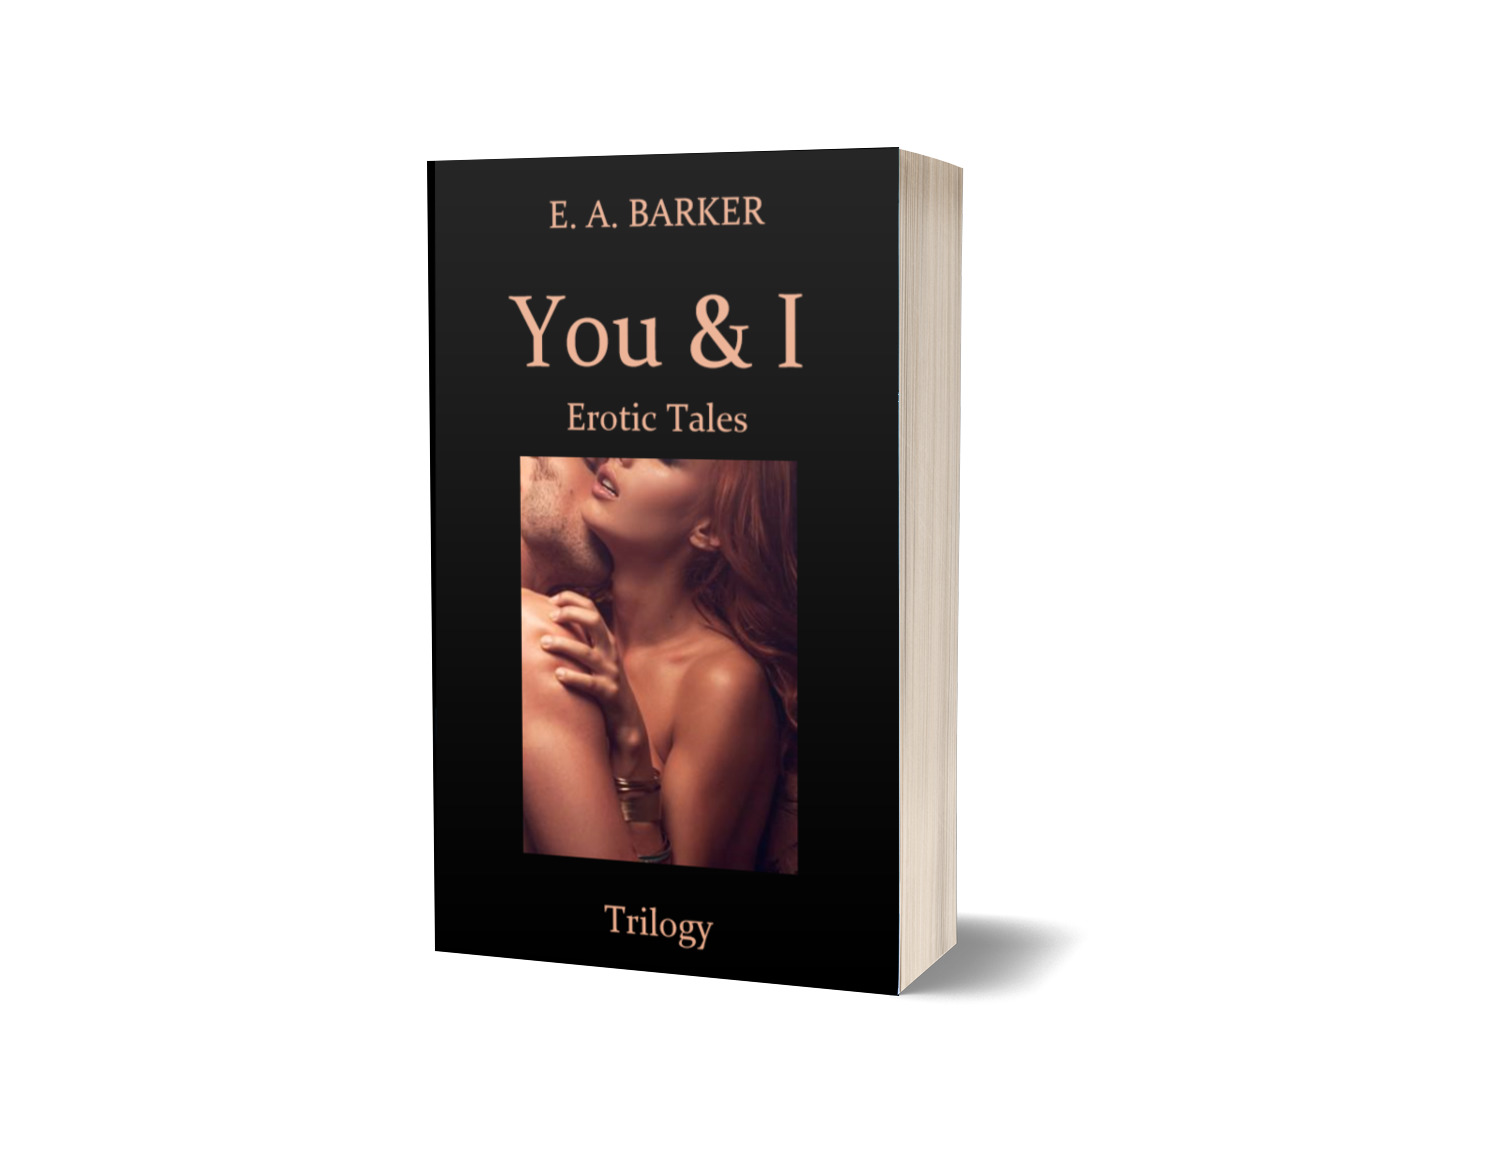 You & I Erotic Tales Trilogy - paperback E. A. Barker Book Cover